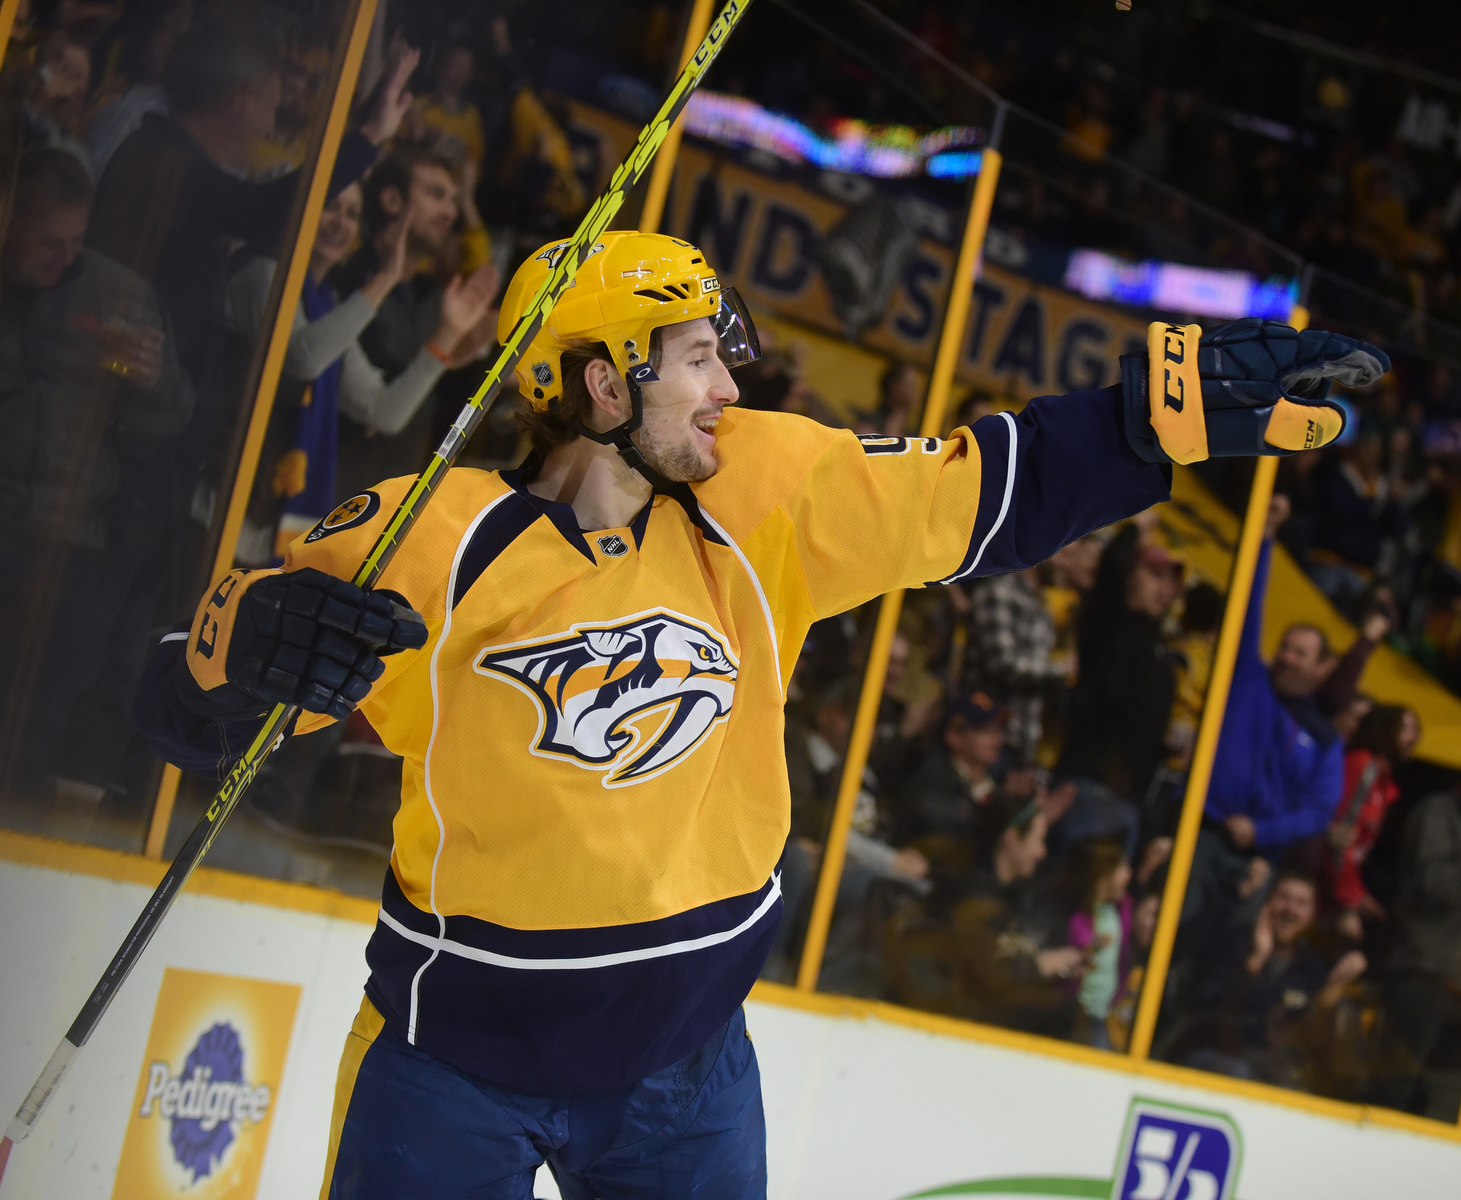 Predators forward Filip Forsberg reacts after scoring a 1st period goal vs the Dallas Stars. Nashville won 5-2. Photos by Mike Strasinger